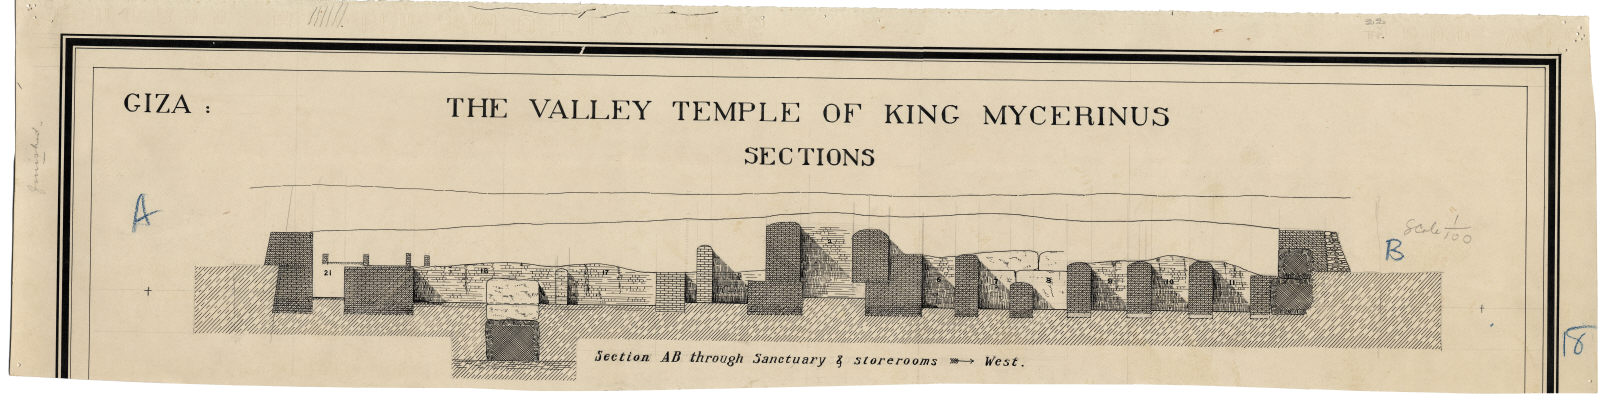 Maps and plans: Menkaure Valley Temple, Section